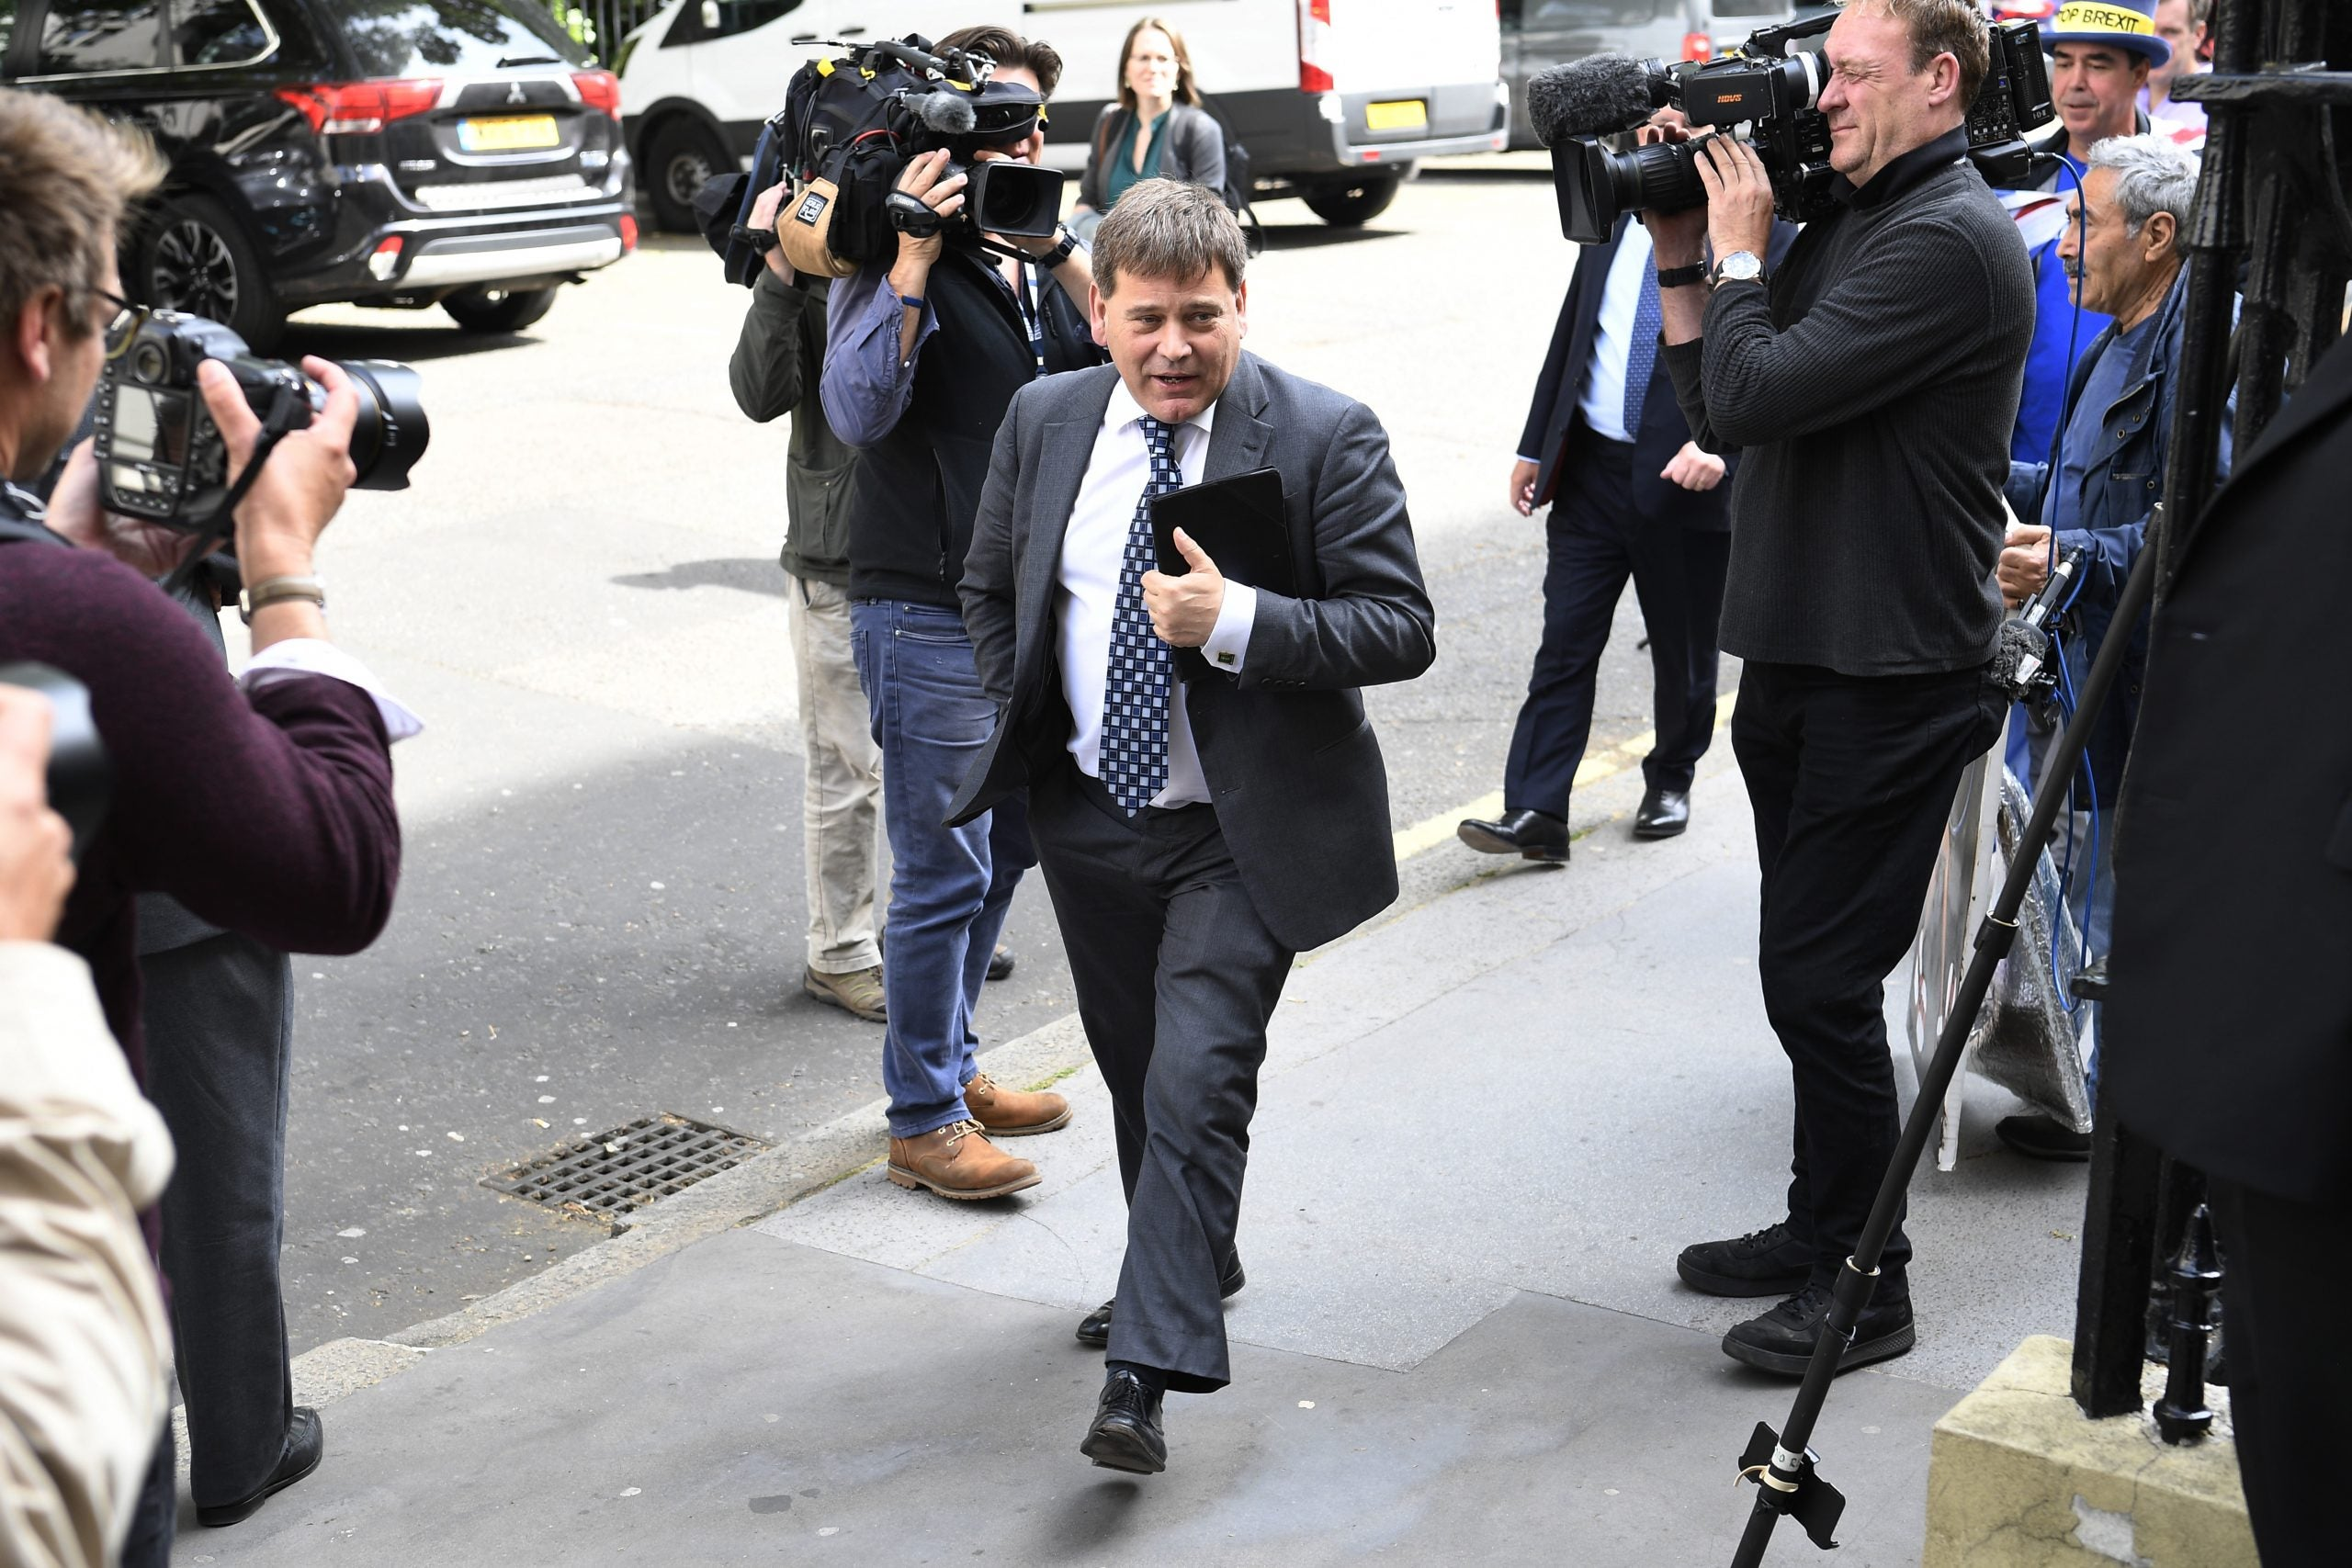 """Andrew Bridgen suggests Jacob Rees-Mogg would have been too """"clever"""" to die at Grenfell"""